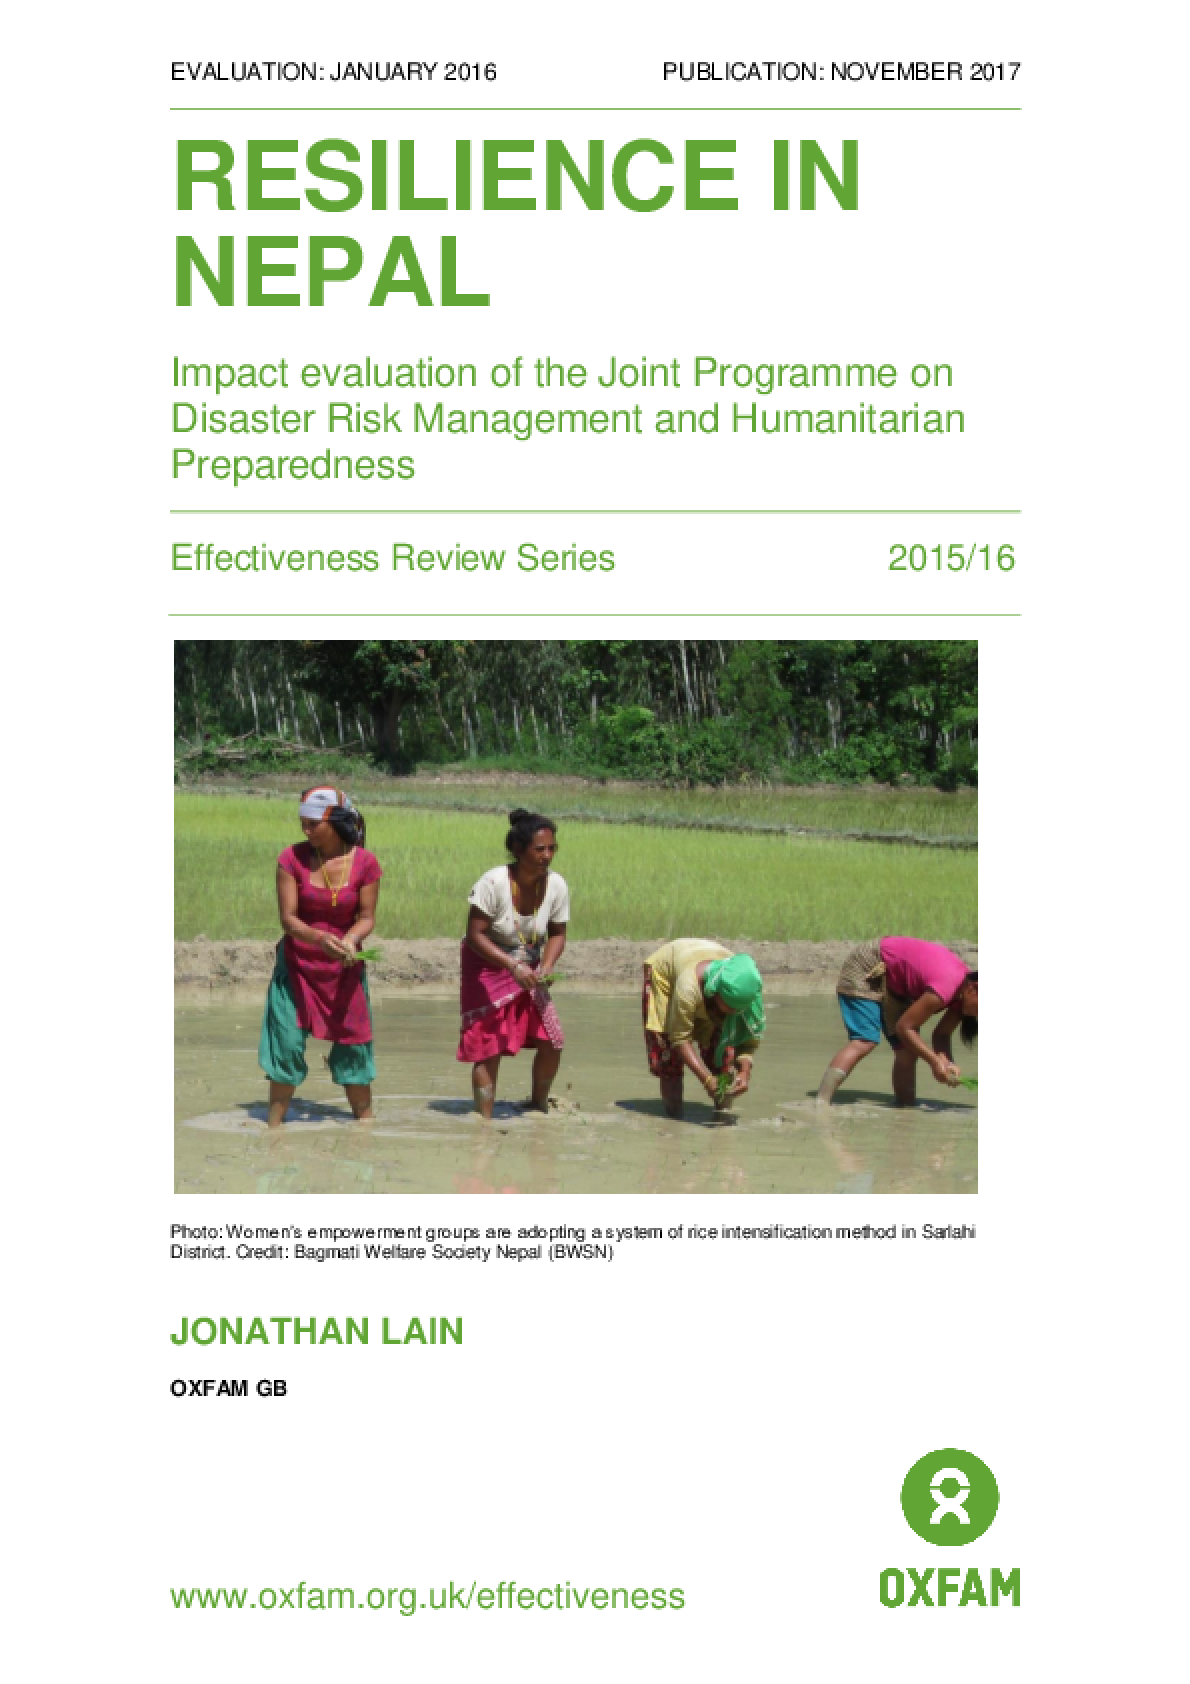 Resilience in Nepal: Impact evaluation of the Joint Programme on Disaster Risk Management and Humanitarian Preparedness